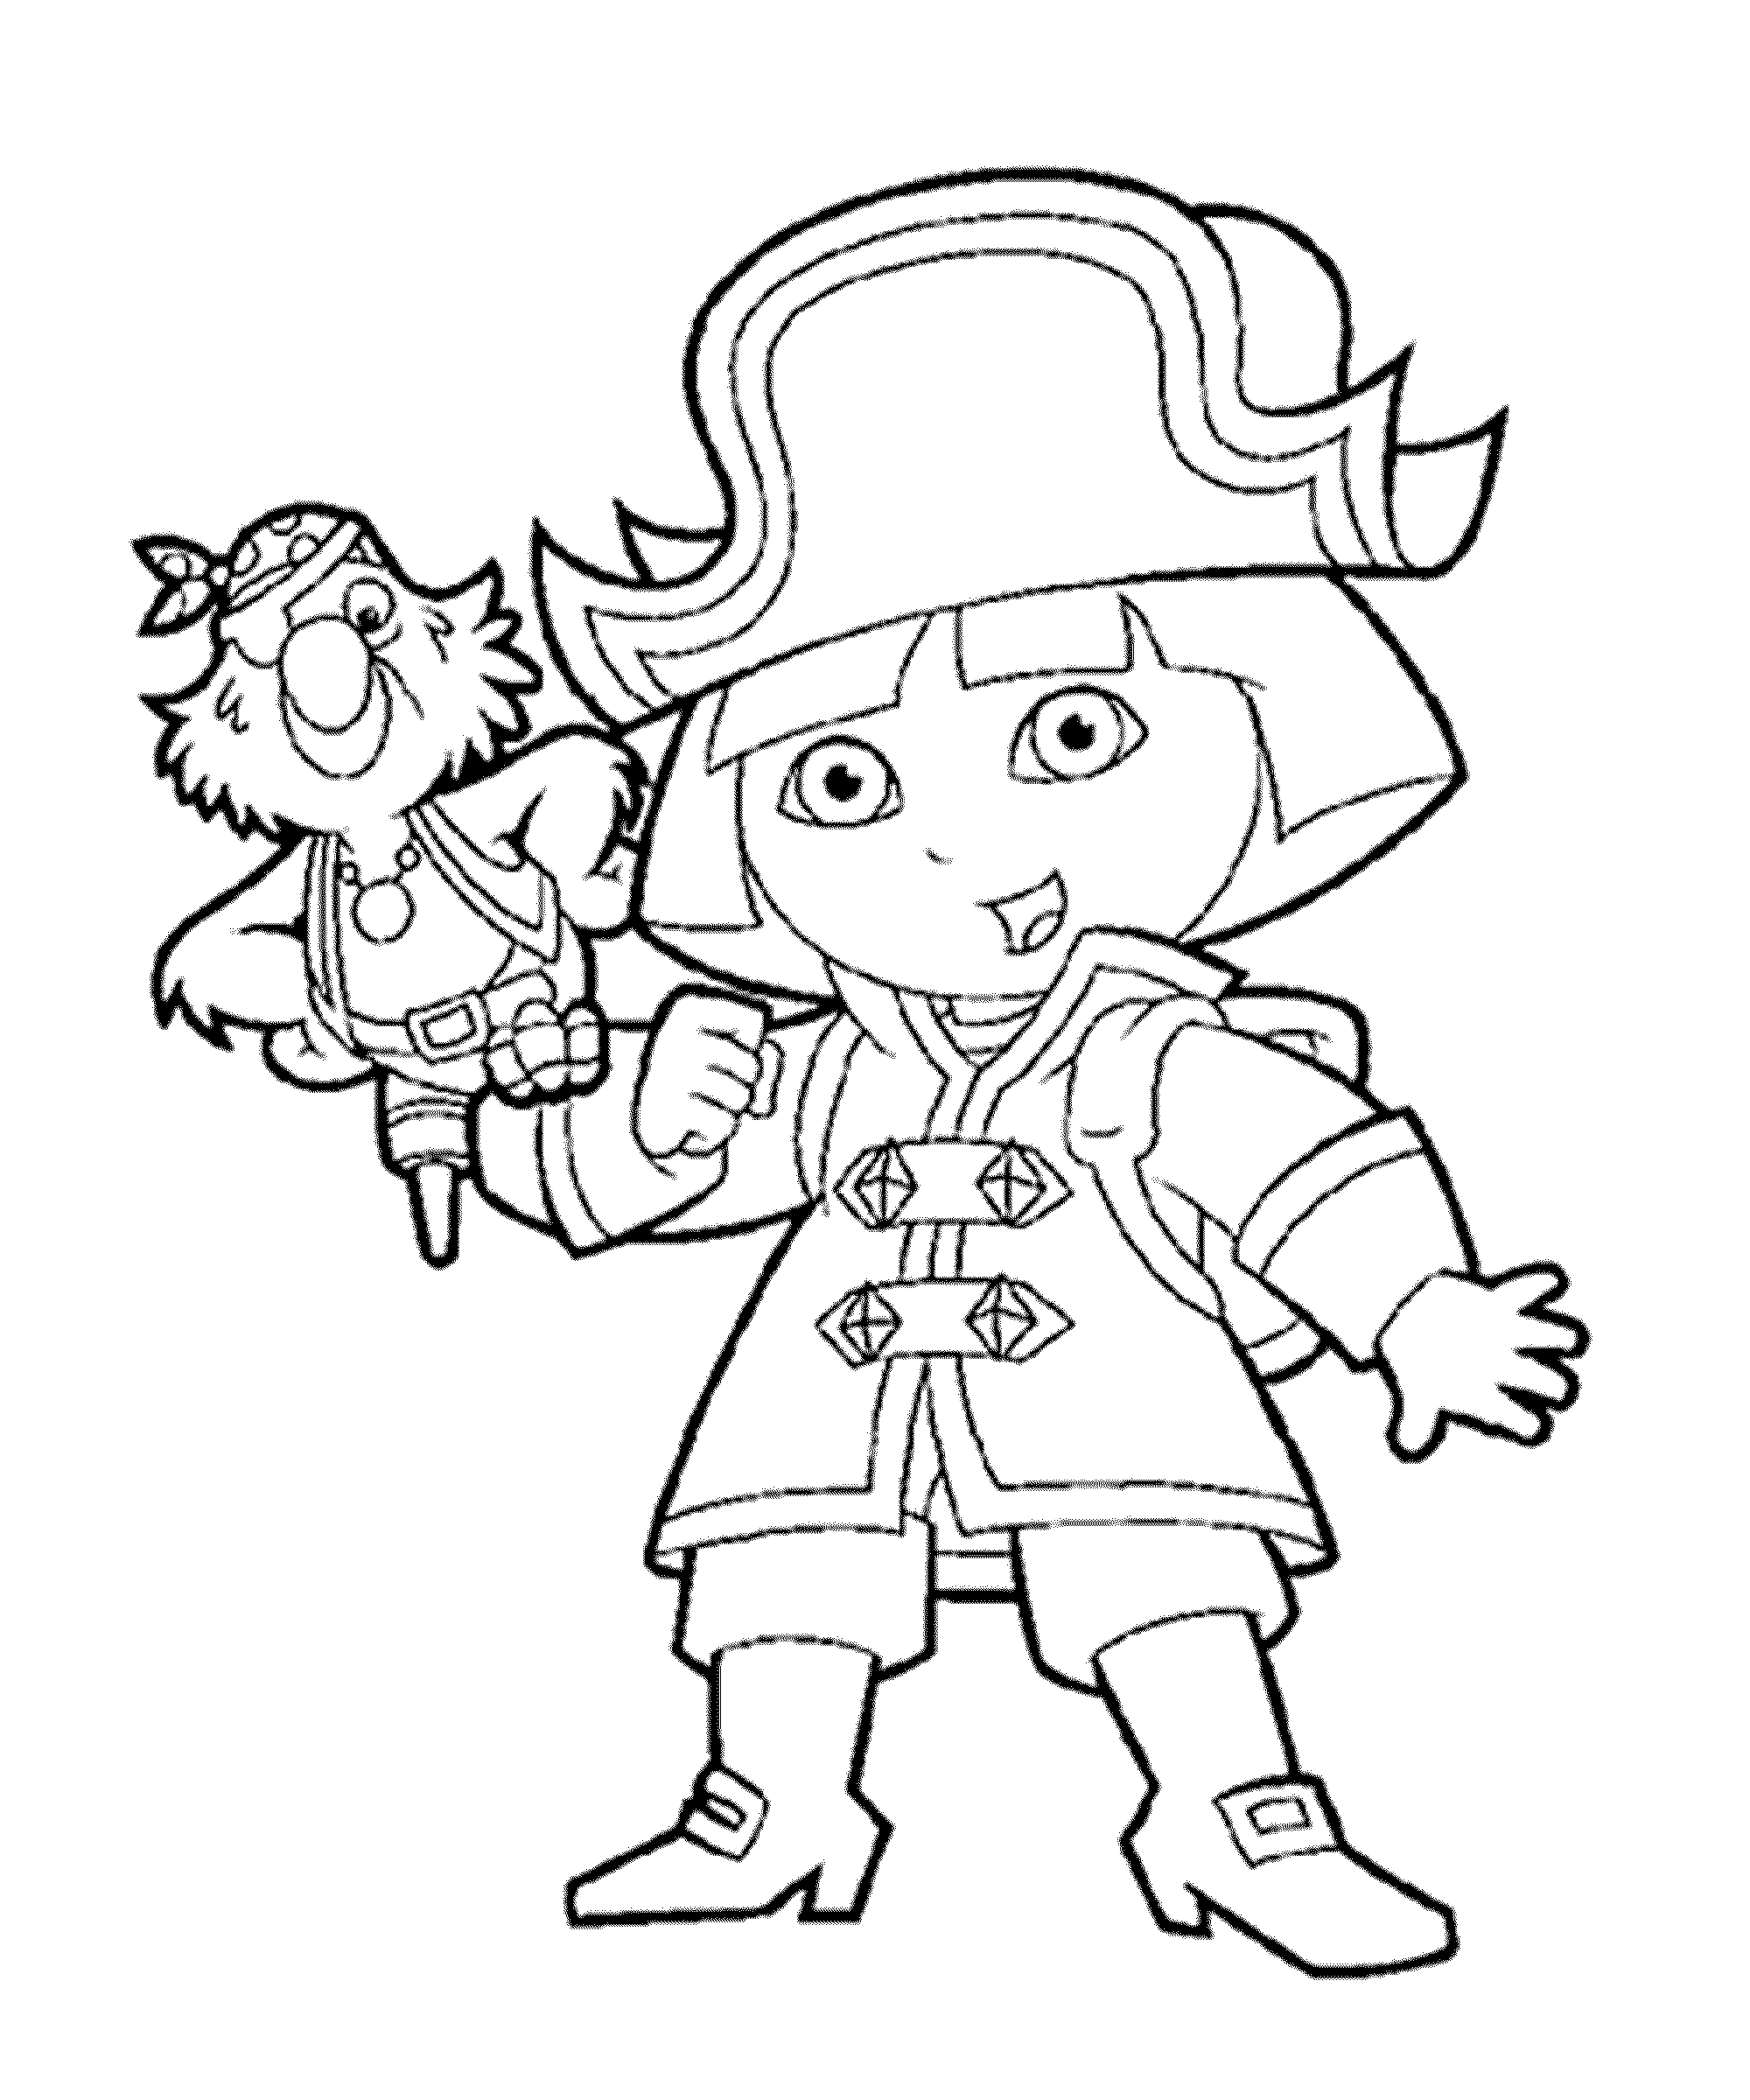 dora colouring sheet print download dora coloring pages to learn new things sheet colouring dora